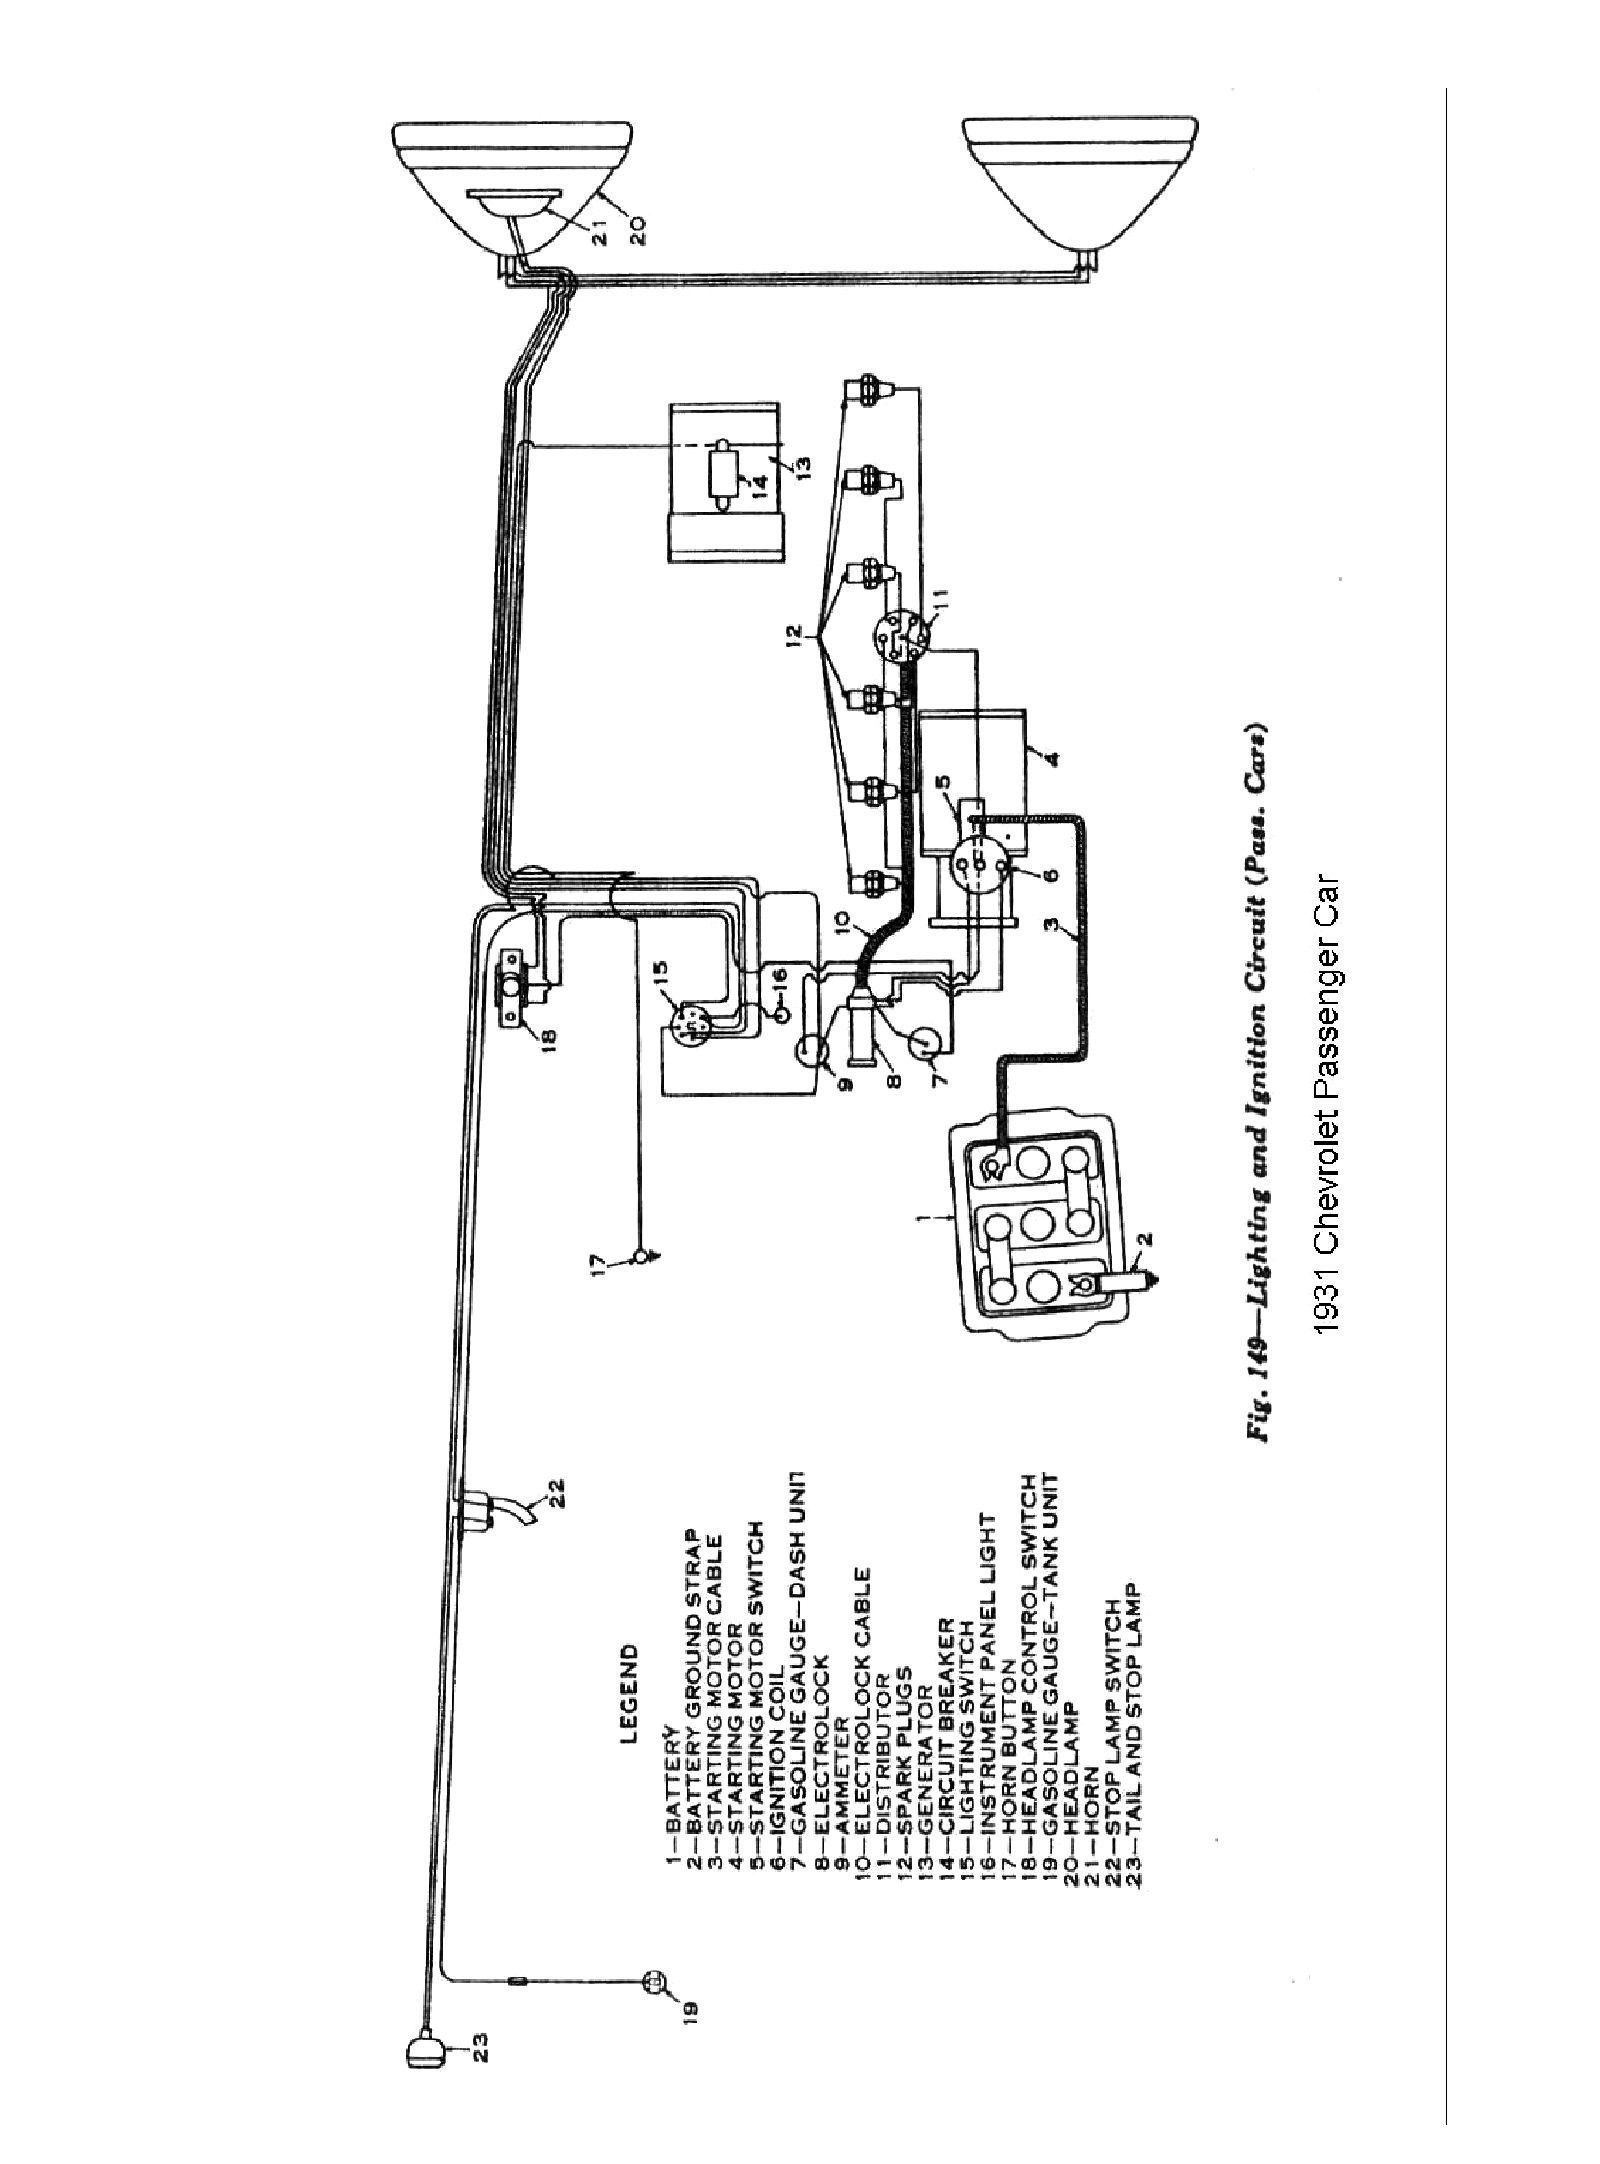 Insteon 3 Way Switch Wiring Diagram Image 4 2 Lights E Inspirational For Rh Joescablecar At